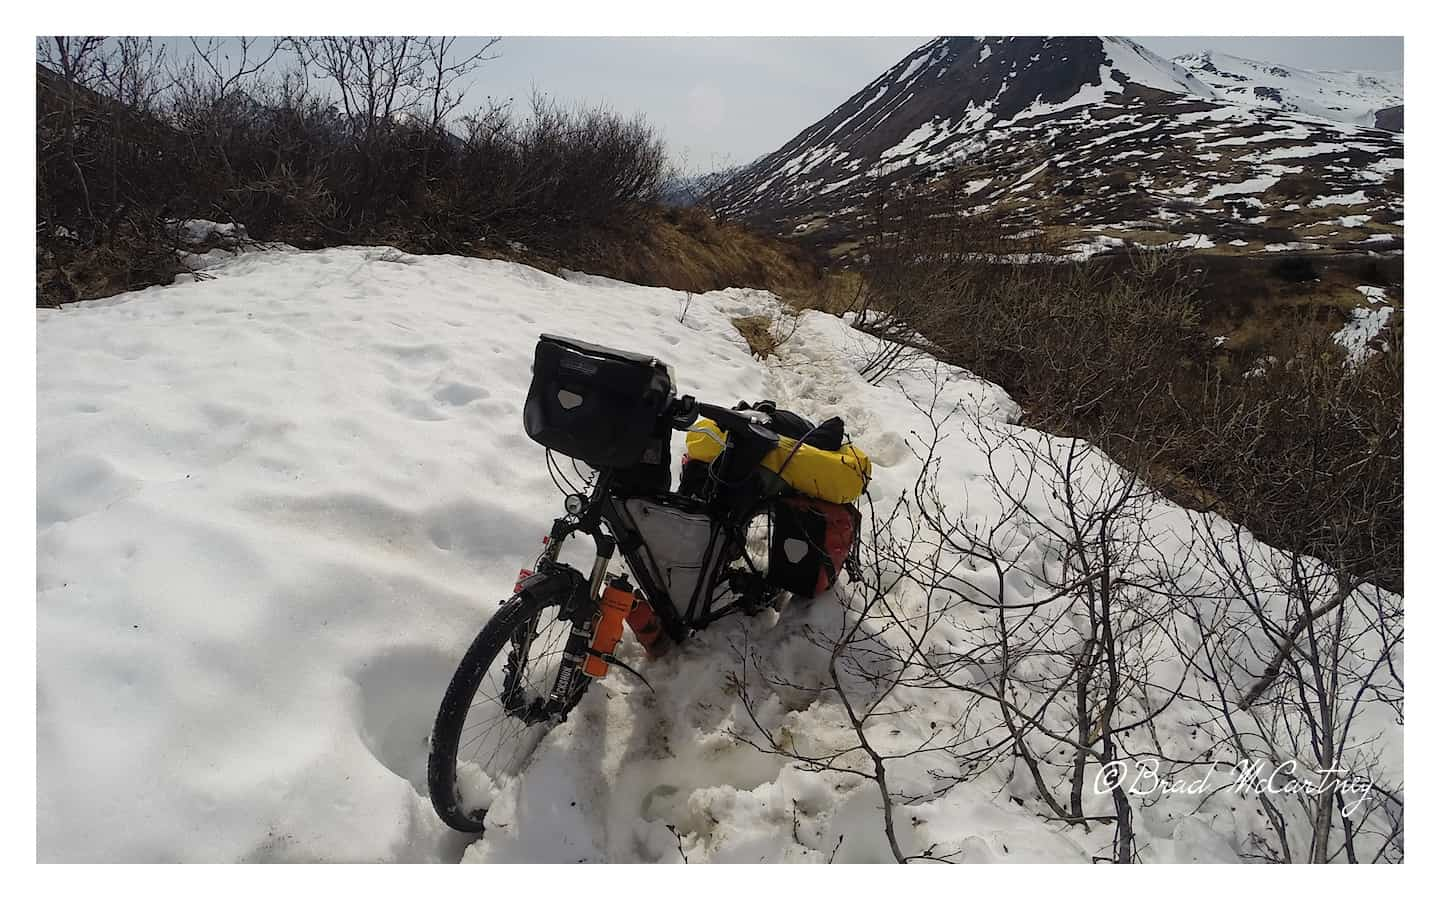 Carrying my bike through the late season Snow drifts of Alaska's Devils Pass